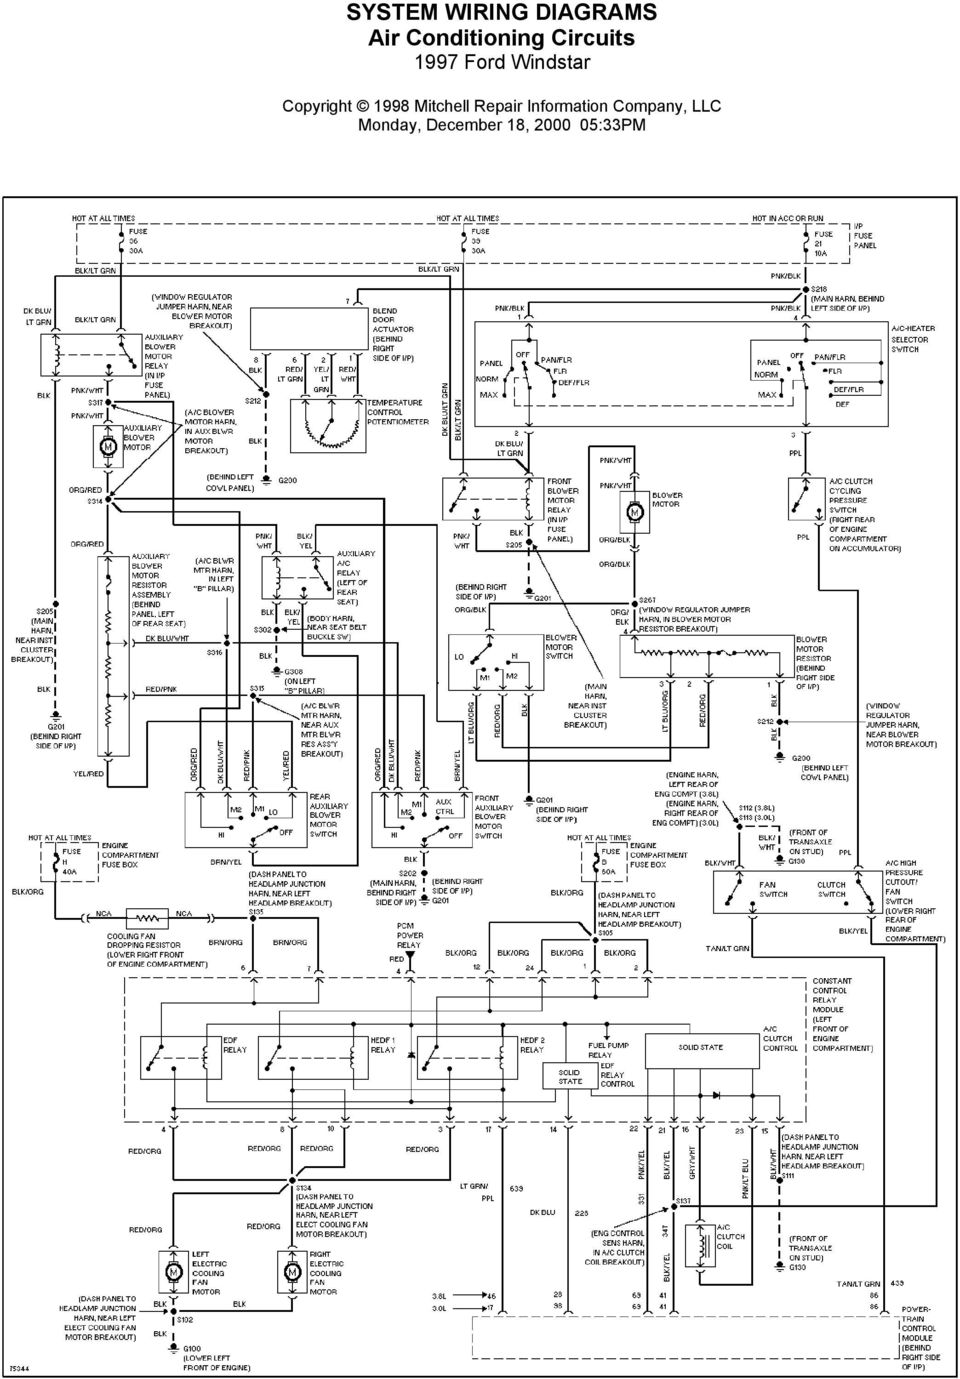 System Wiring Diagrams Air Conditioning Circuits 1997 Ford Windstar 2013 Subaru Wrx Interior